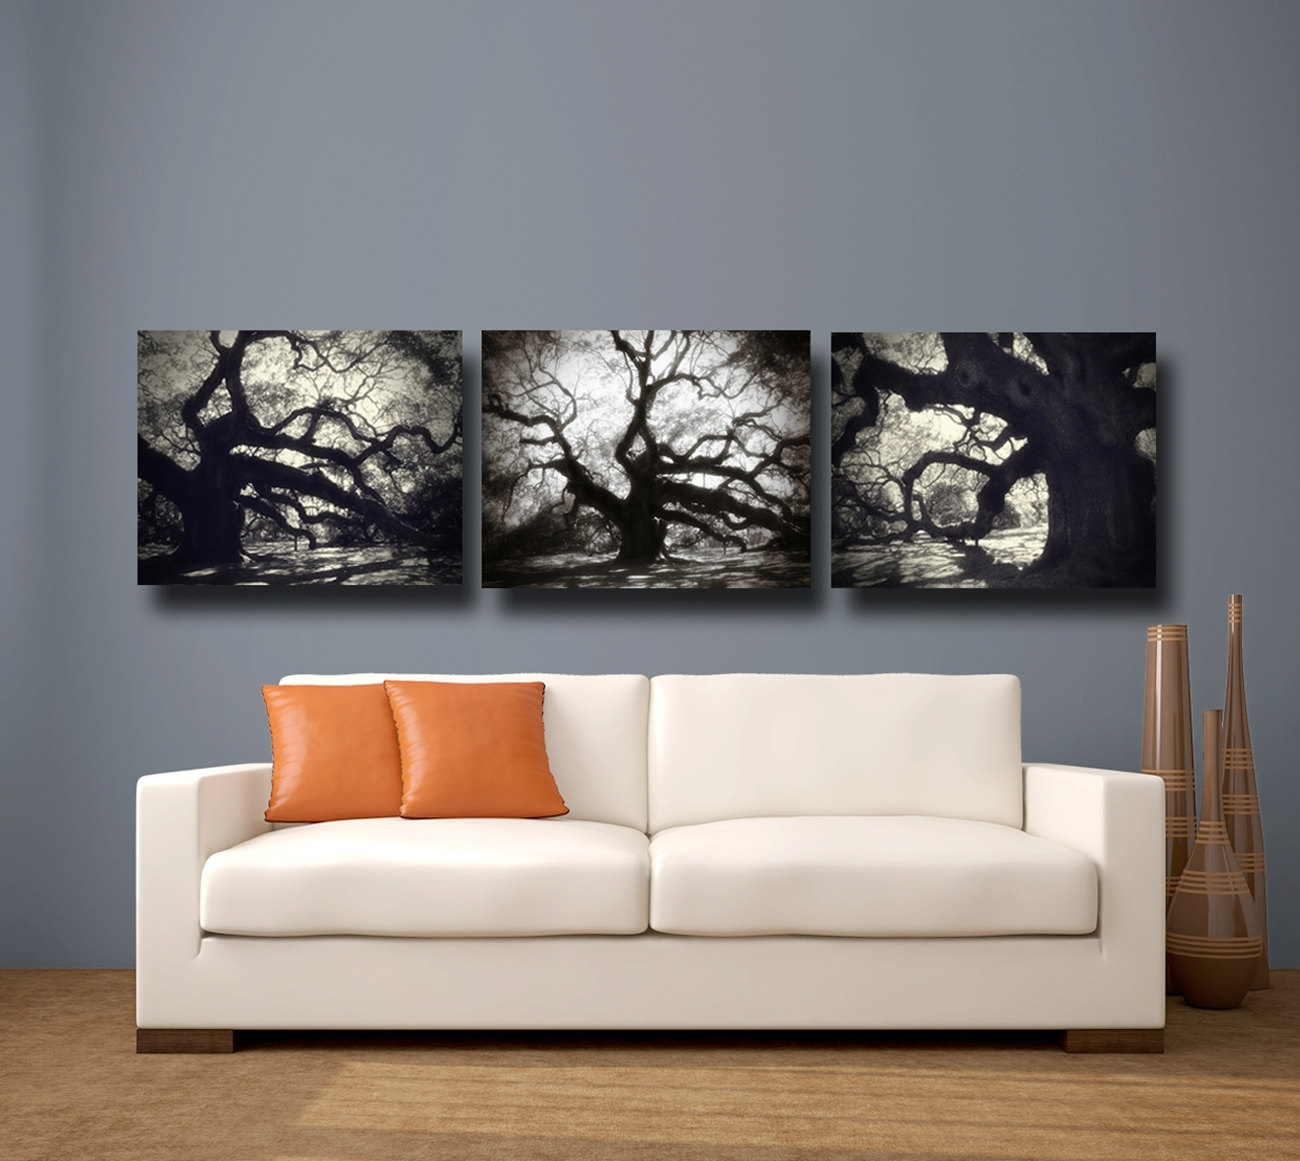 Wall Art Designs: Black And White Canvas Wall Art Astounding Throughout Most Current Black And White Photography Canvas Wall Art (View 15 of 15)